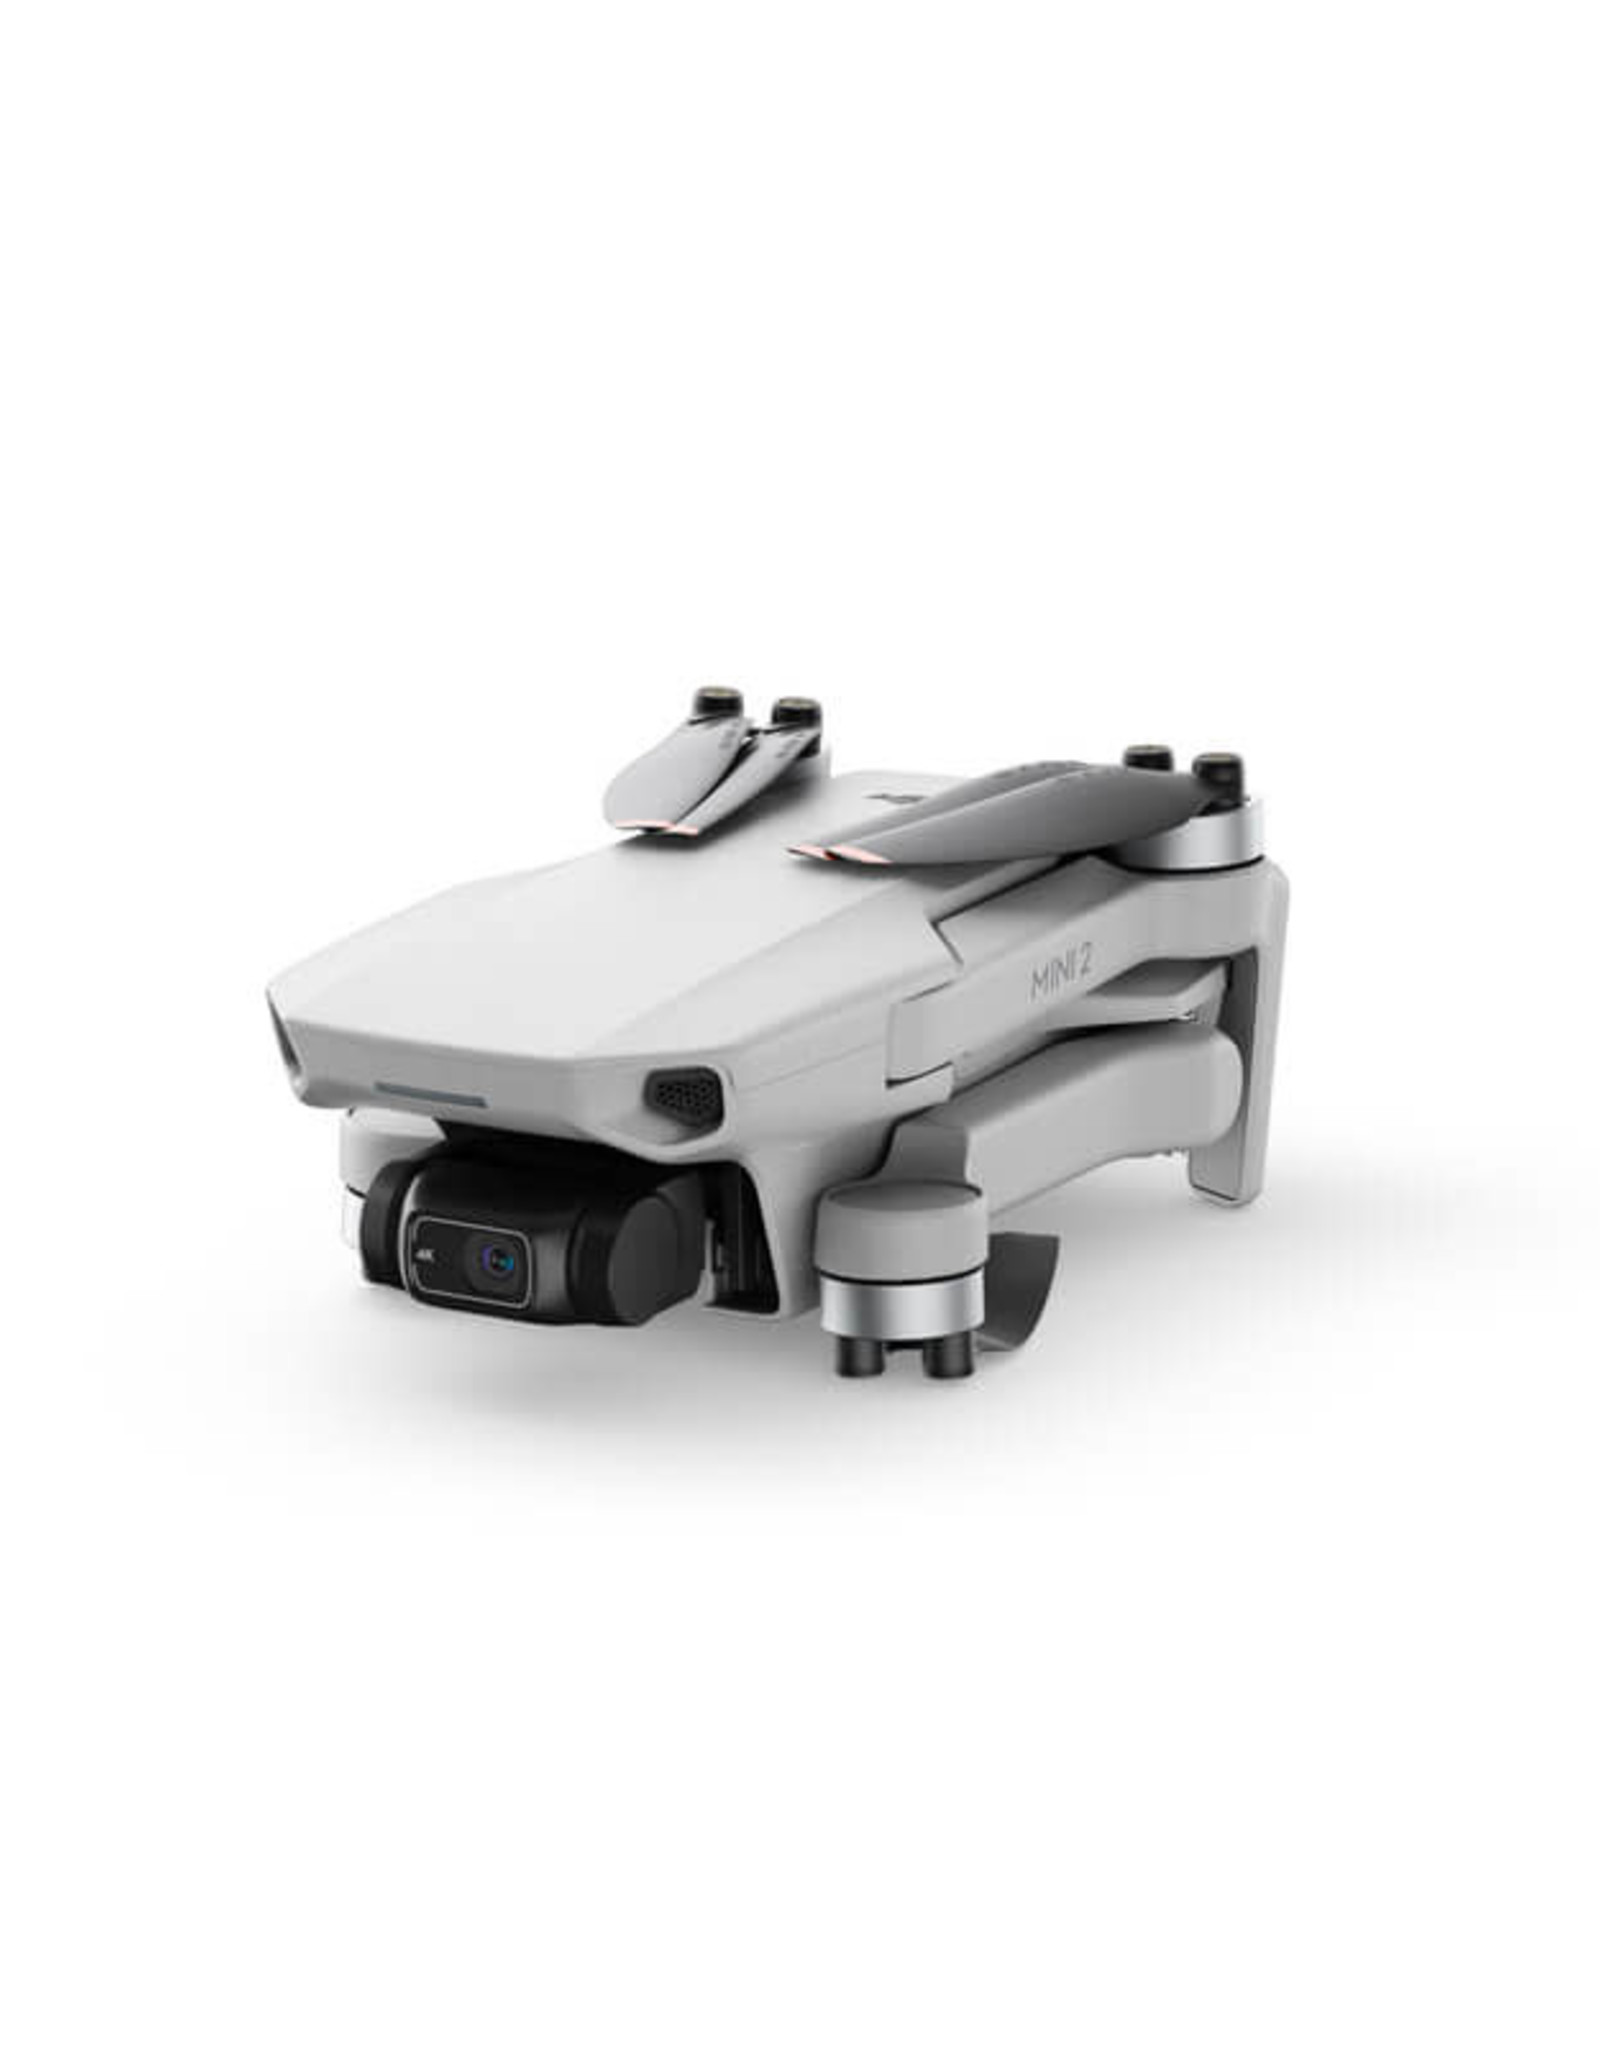 DJI DJI Mini 2 Fly More Combo Quadcopter with Remote Controller